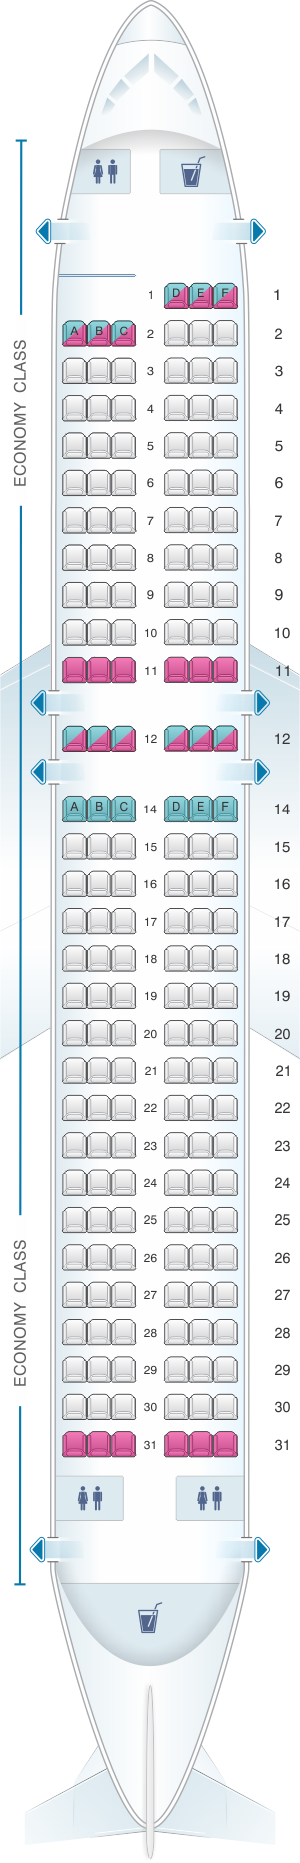 allegiant flight map with Allegiant Air Airbus A320 on Seat Map Mcdonnell Douglas Md 88 Delta Airlines Best Seats In Plane furthermore Air France Charge Obese Passengers Fat Tax April 1st in addition British Airways EasyJet Ryanair Ranked Airline Legroom League moreover Vintage Airline Seat Map American Airlines Boeing 707 323 besides Terminal Map.